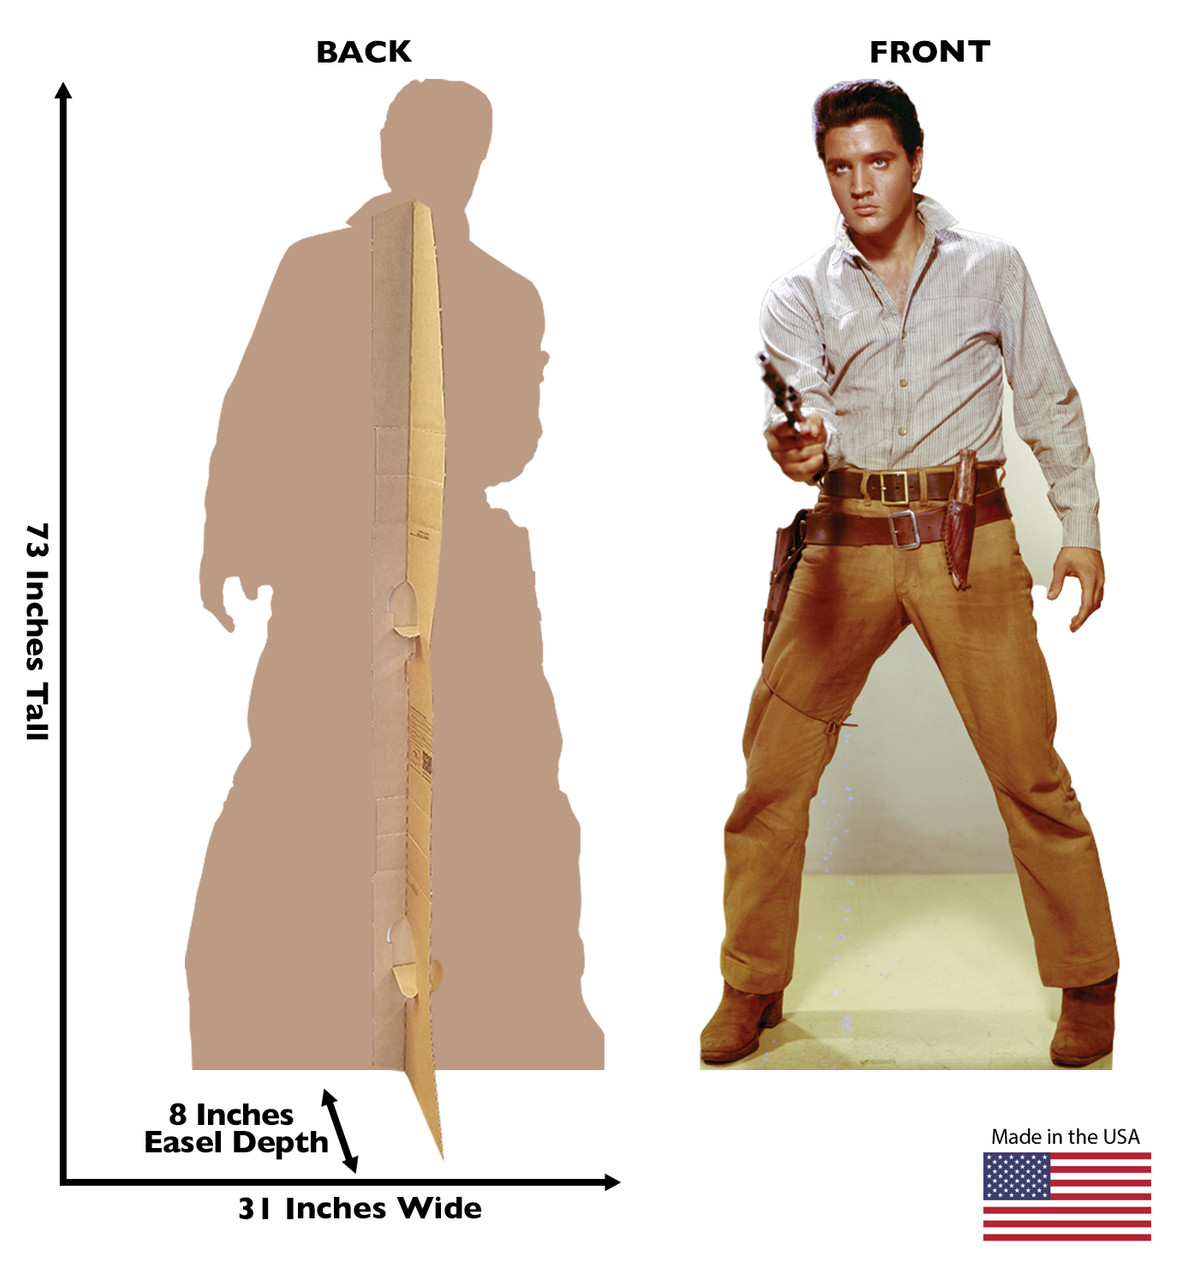 Elvis Gunfighter Cardboard Cutout front and back view